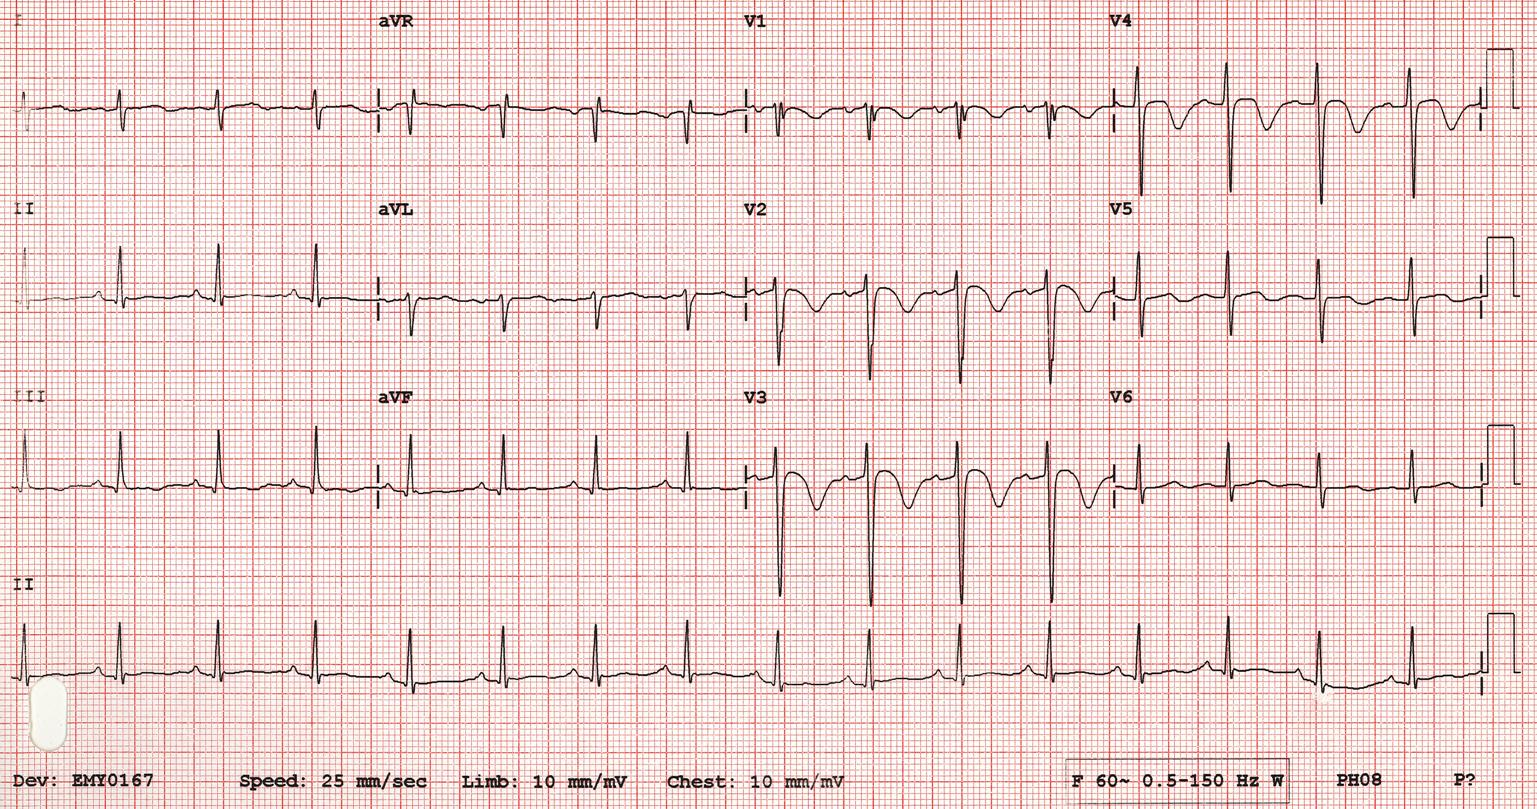 Wellens' Syndrome Type A